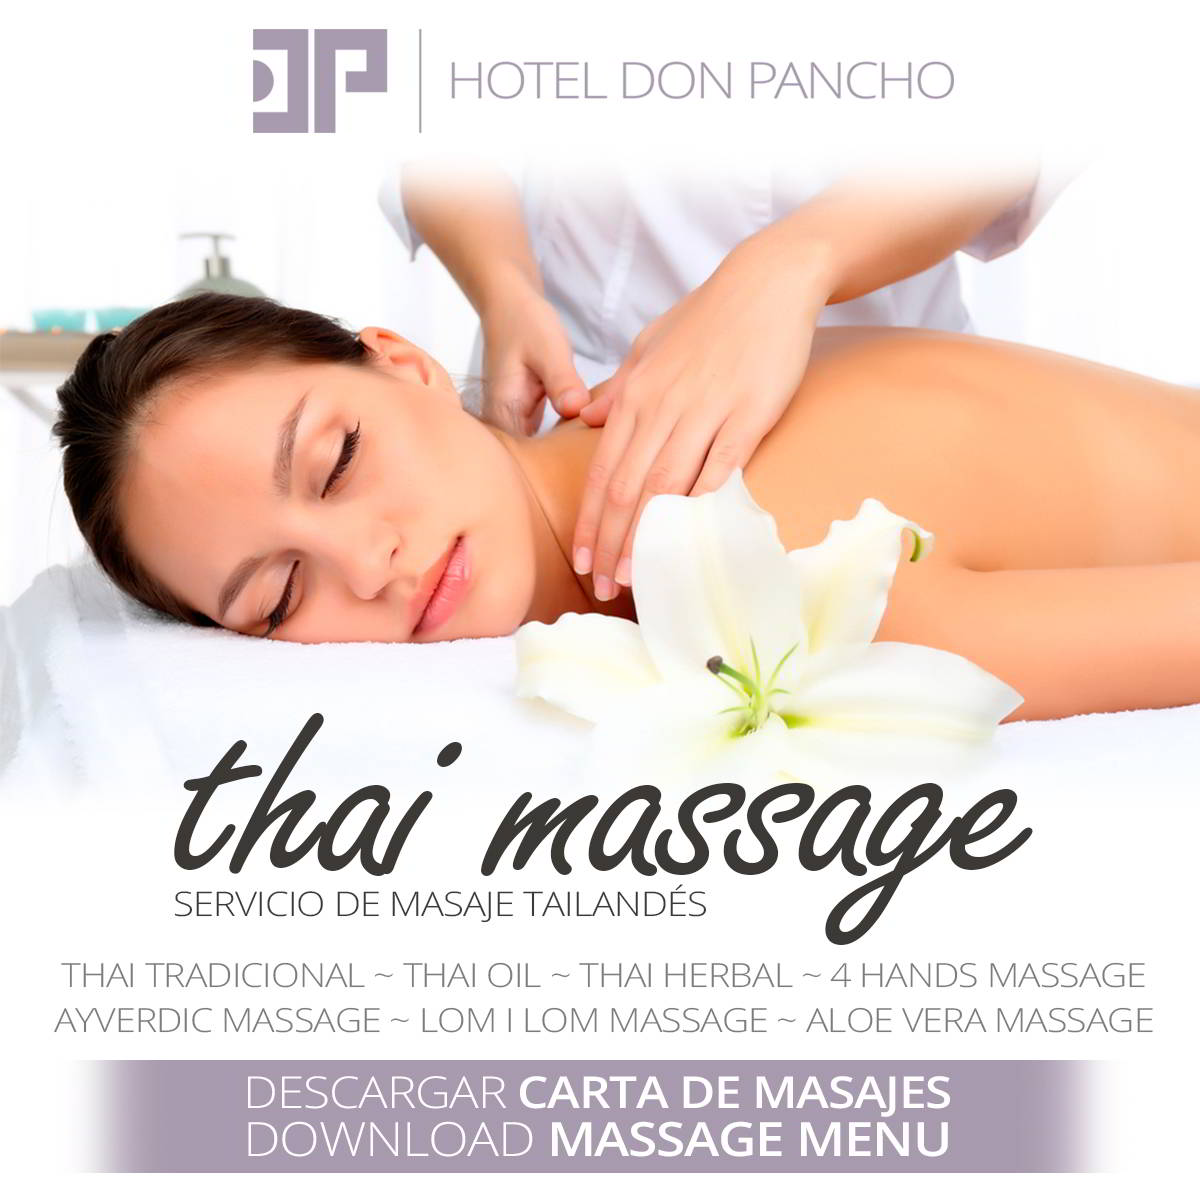 Try our thai massage